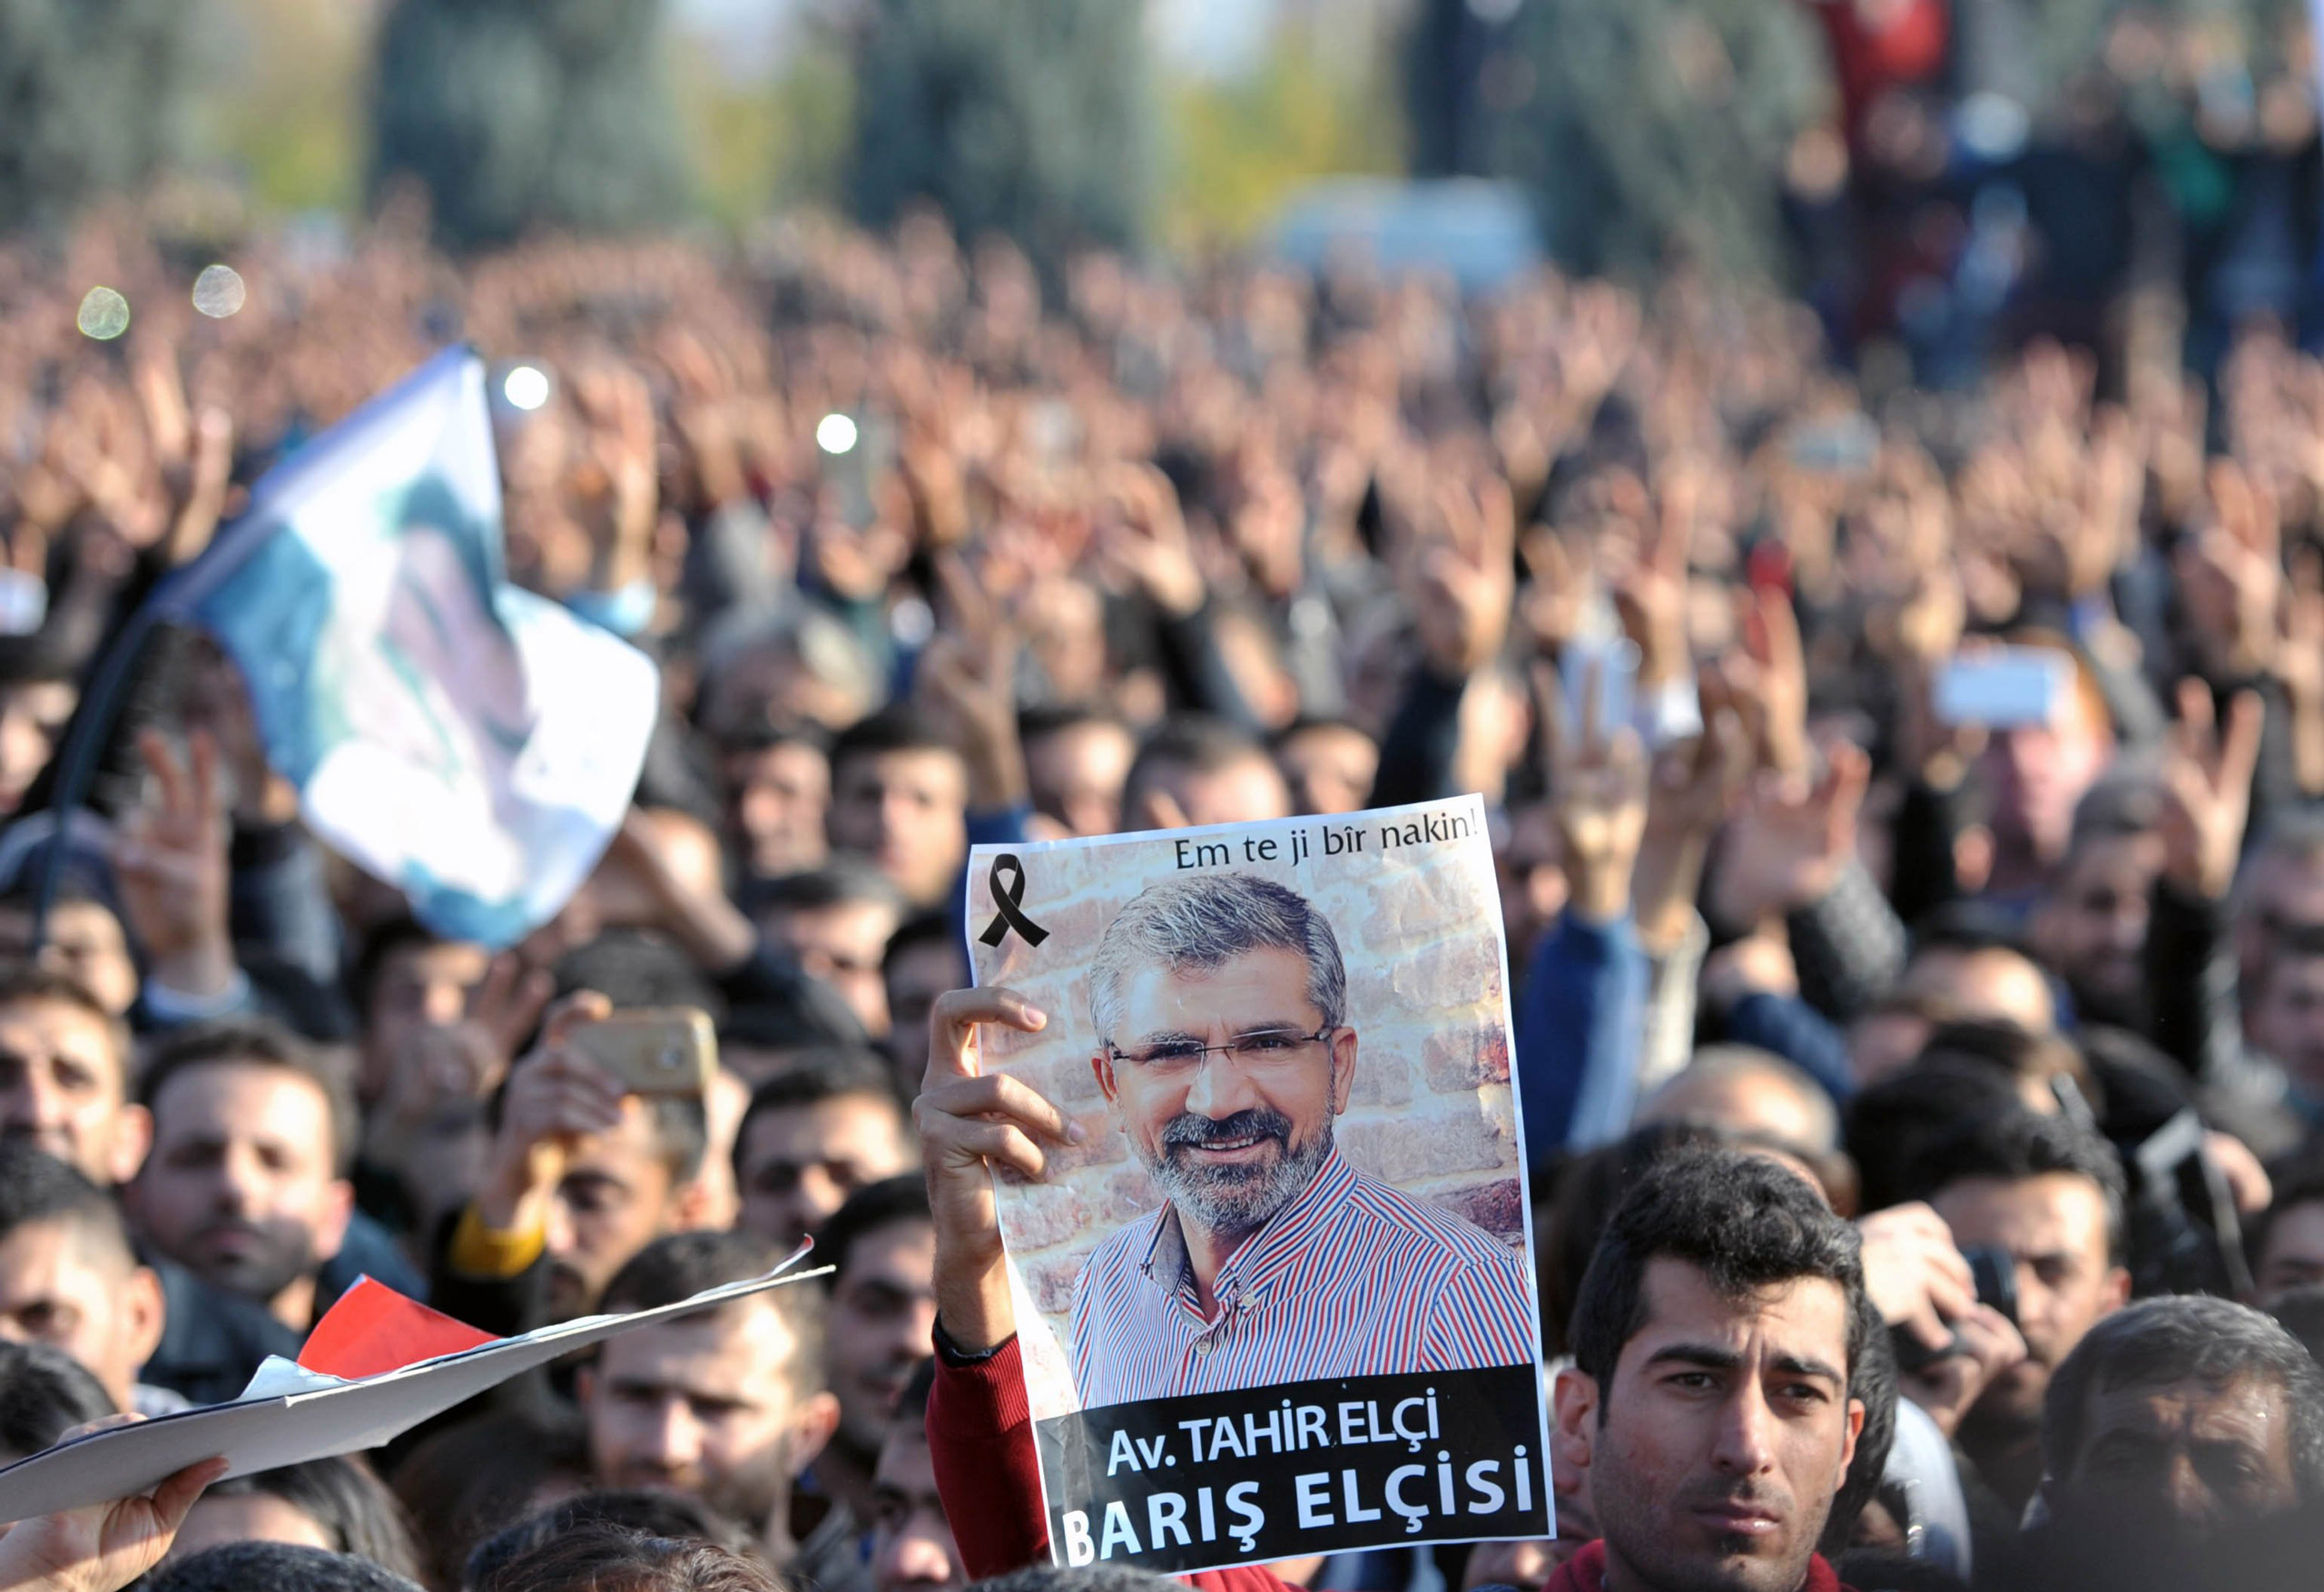 A man holds a portrait of Tahir Elci, head of the Diyarbakir Bar Association, during a mourning ceremony in Diyarbakir province, Turkey, on Nov. 29, 2015.